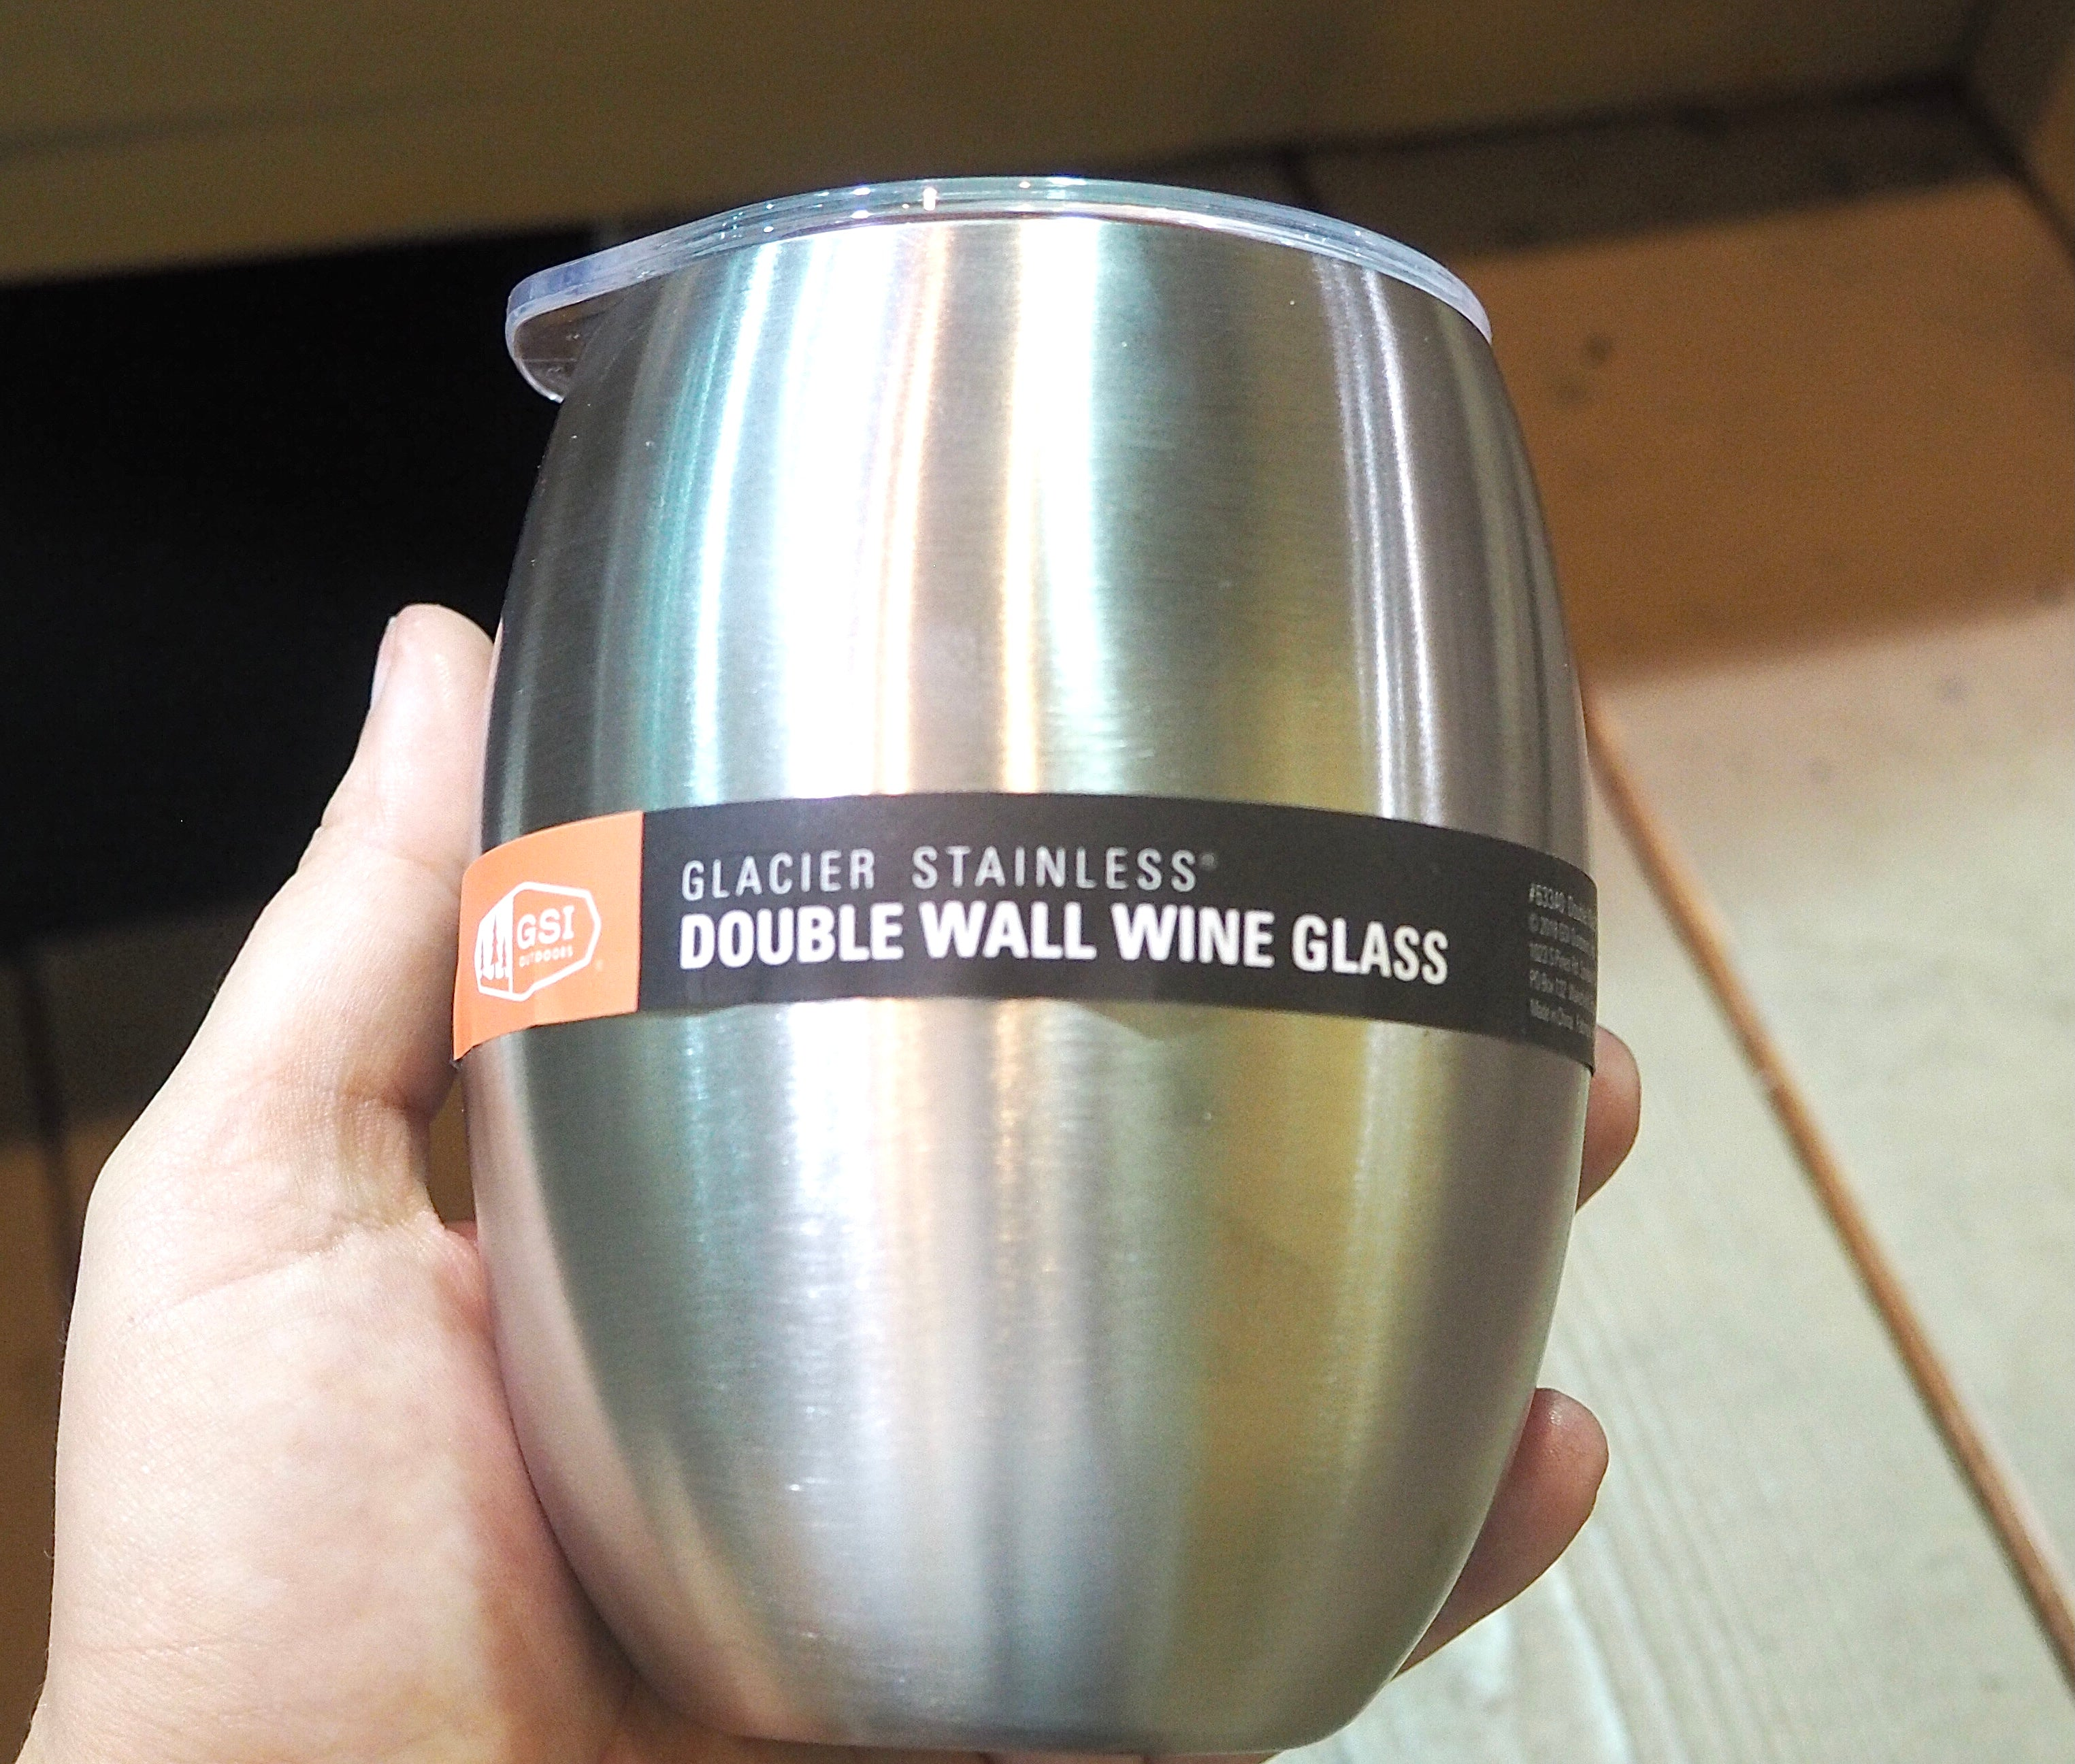 GSI Outdoors Glacier Stainless Steel Double Wall Wine Glass